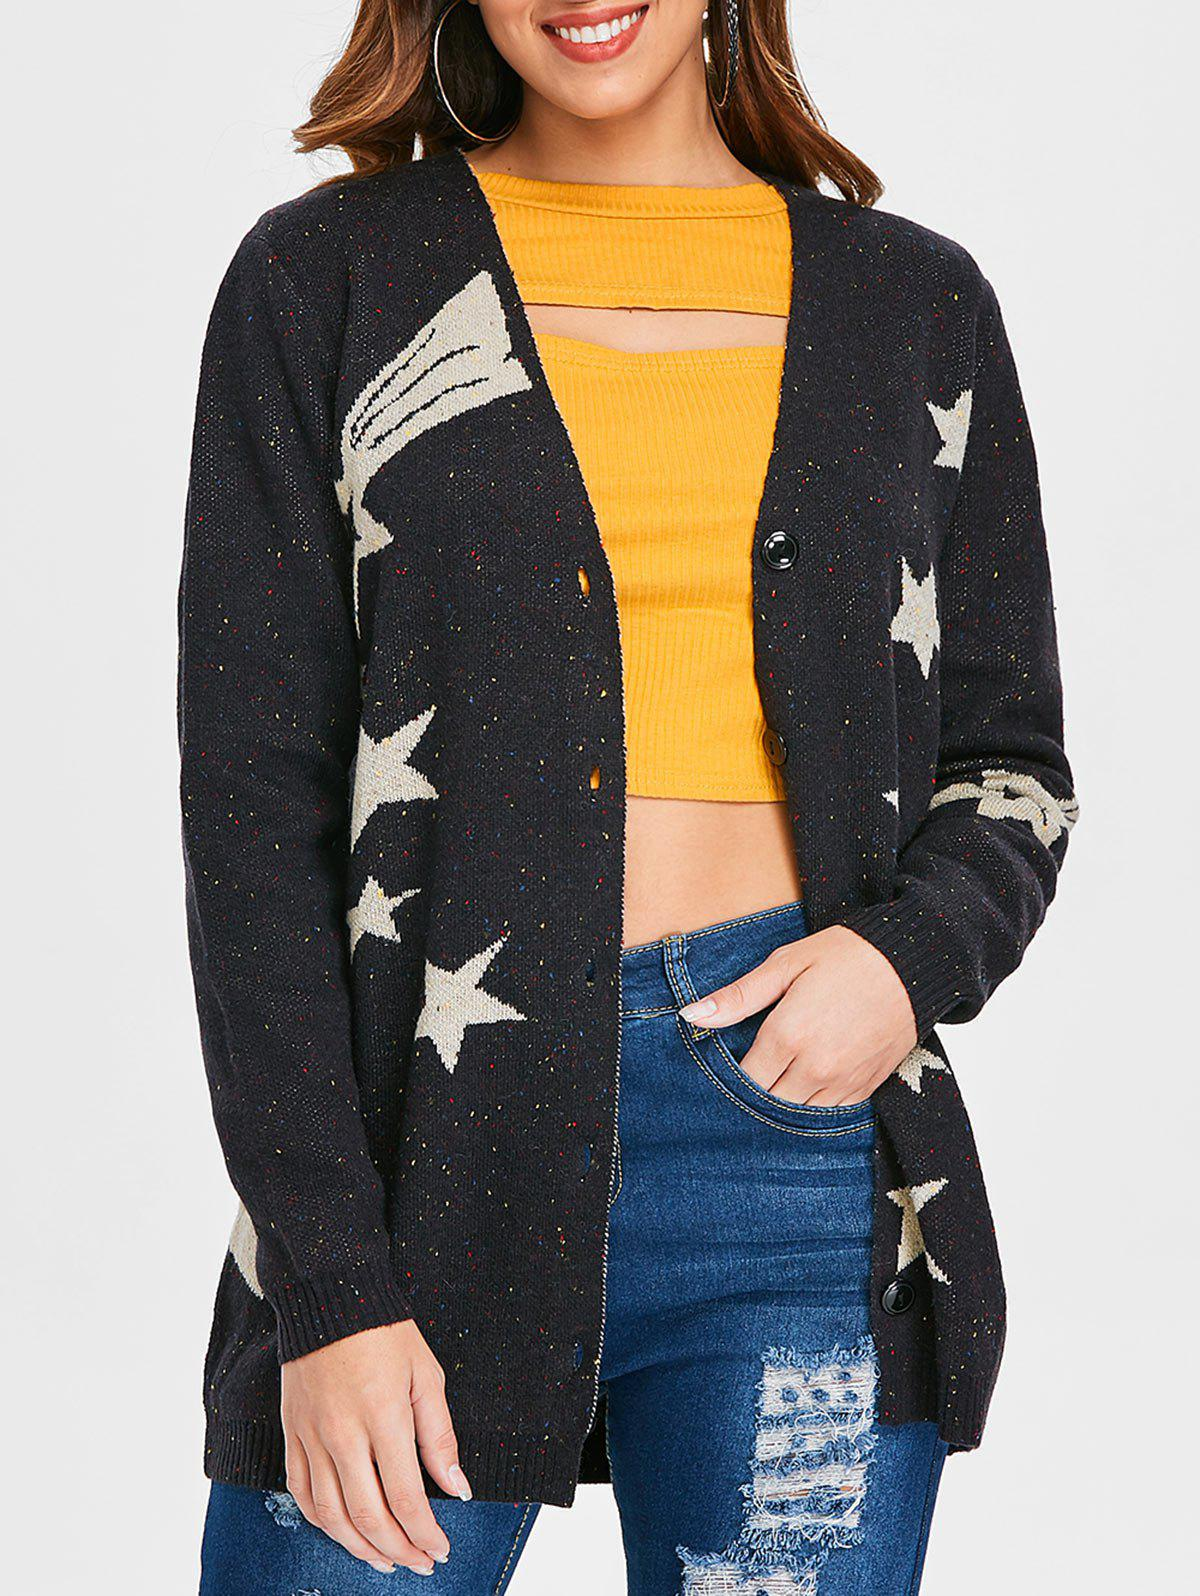 New Star Pattern Button Up Cardigan